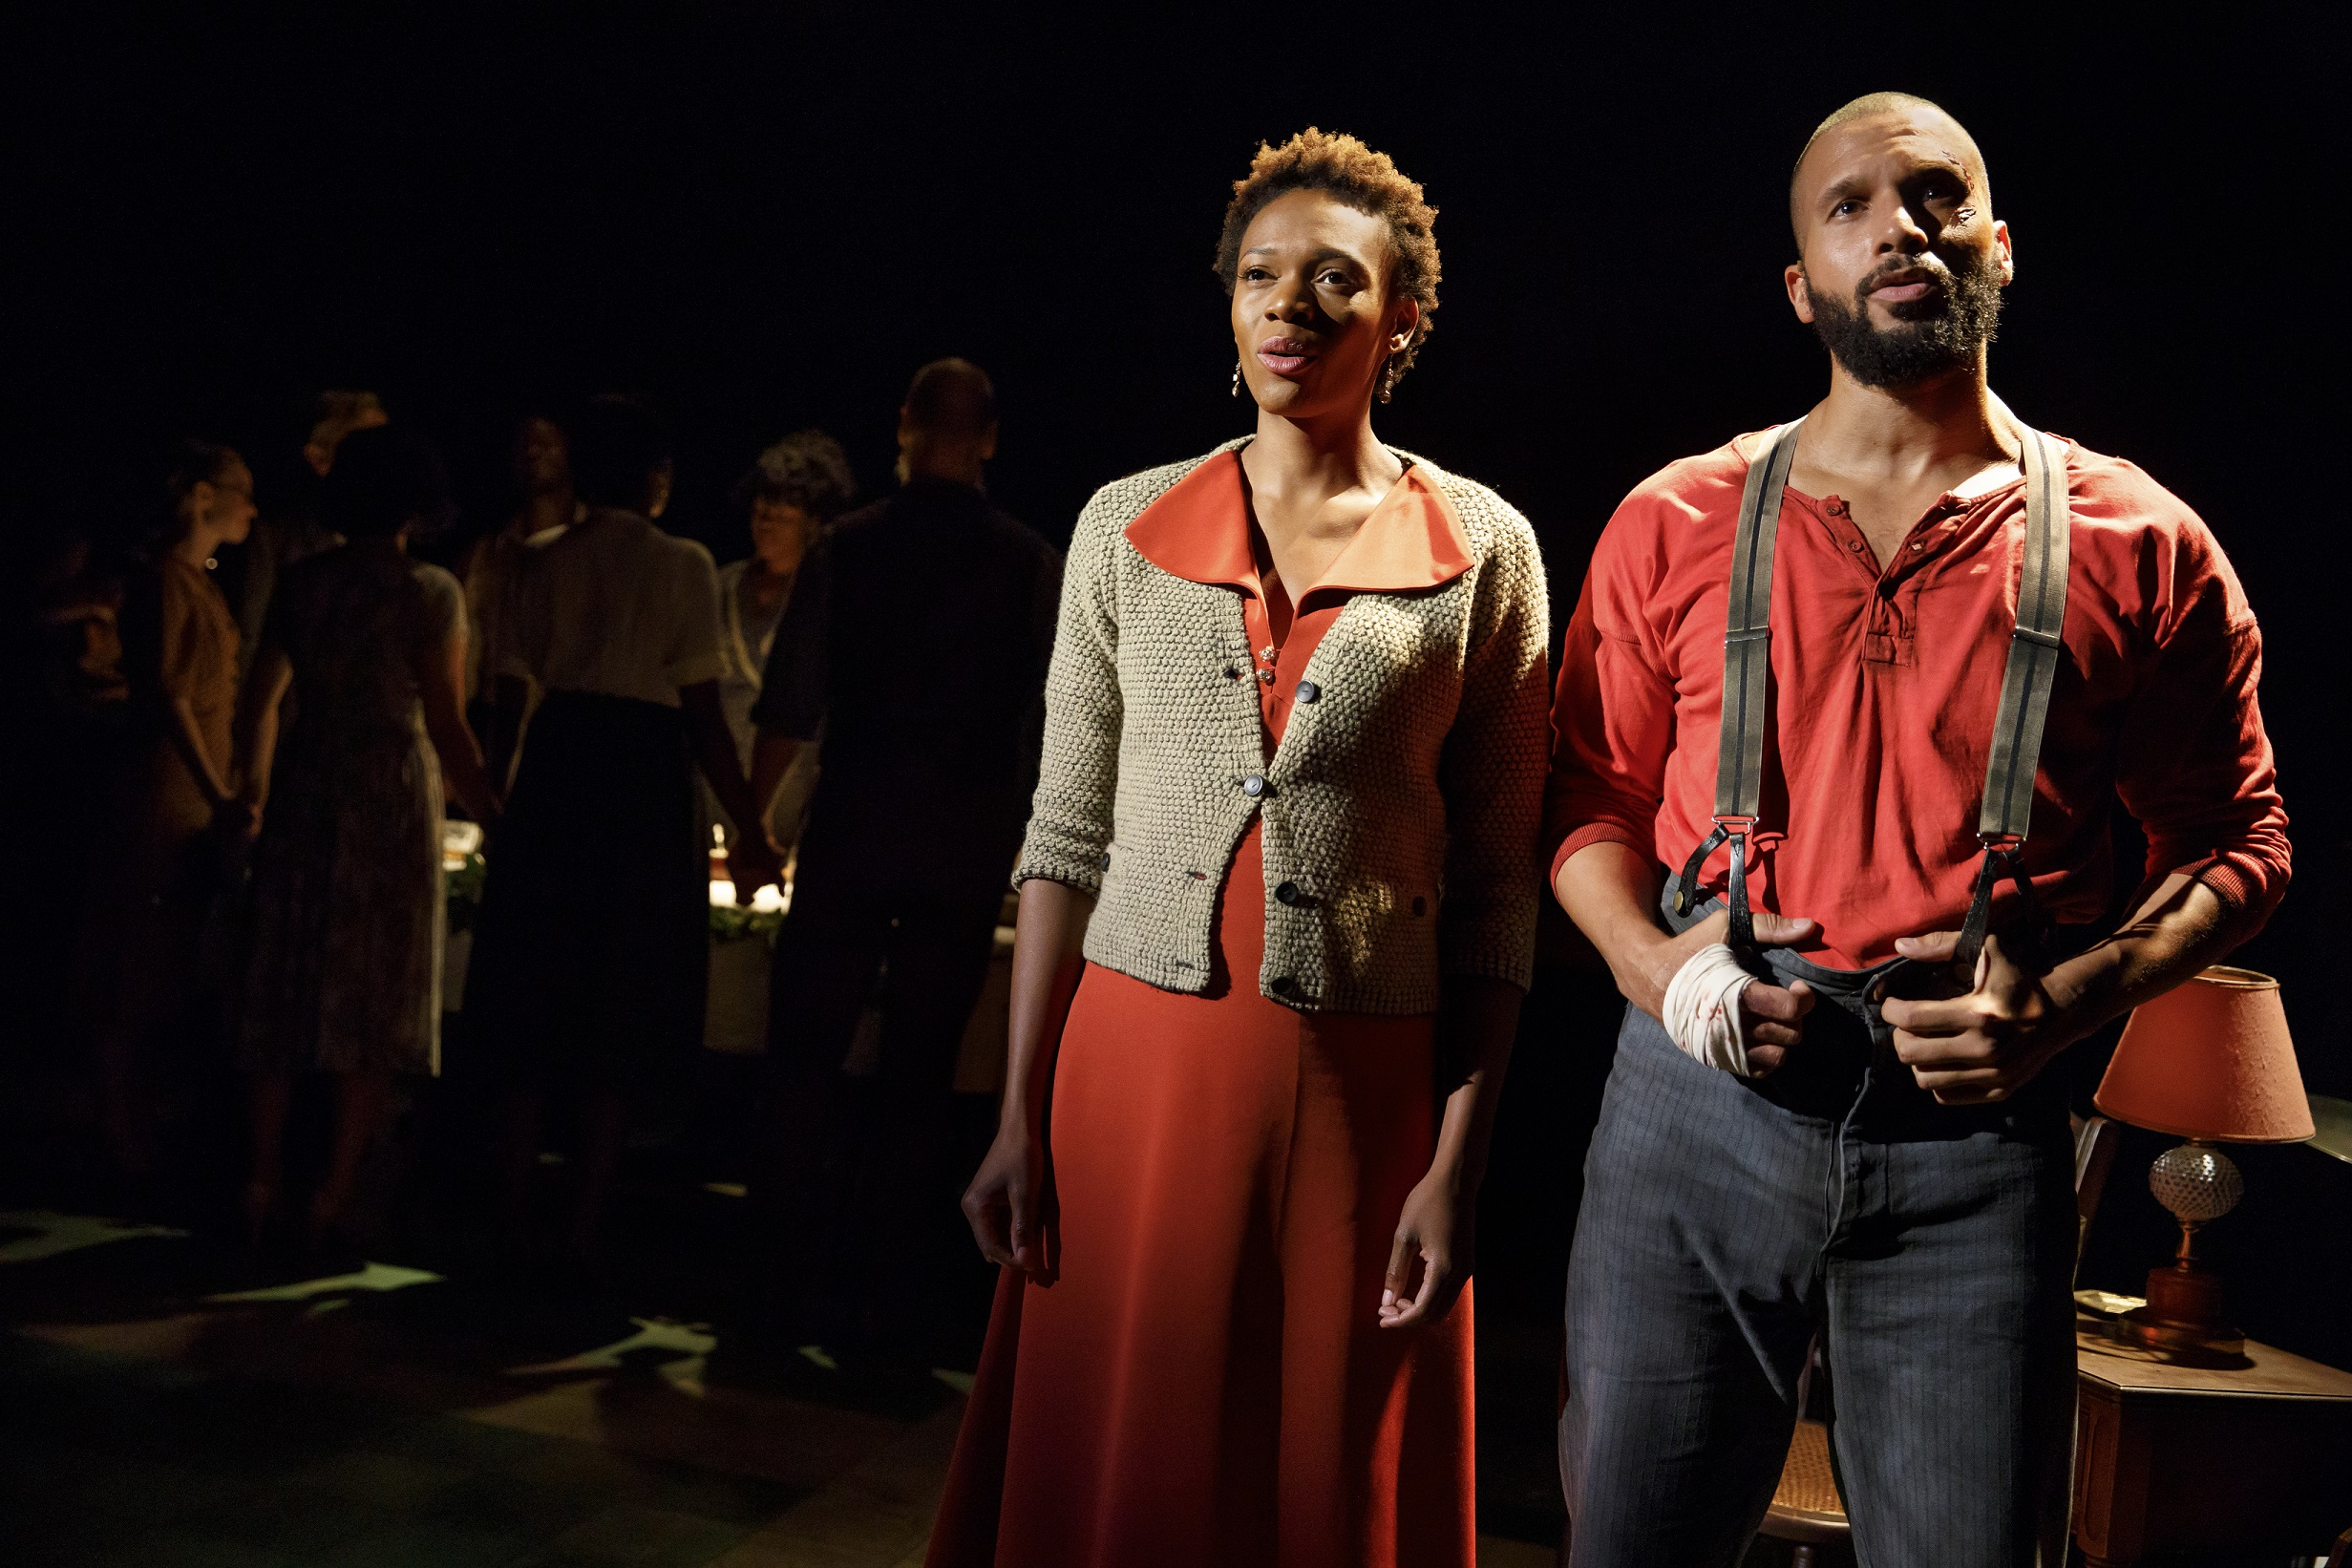 Kimber Sprawl and Sydney James Harcourt (foreground) and the company of Girl from the North Country, written and directed by Conor McPherson, with music and lyrics by Bob Dylan, running at The Public Theater. Photo Credit: Joan Marcus.